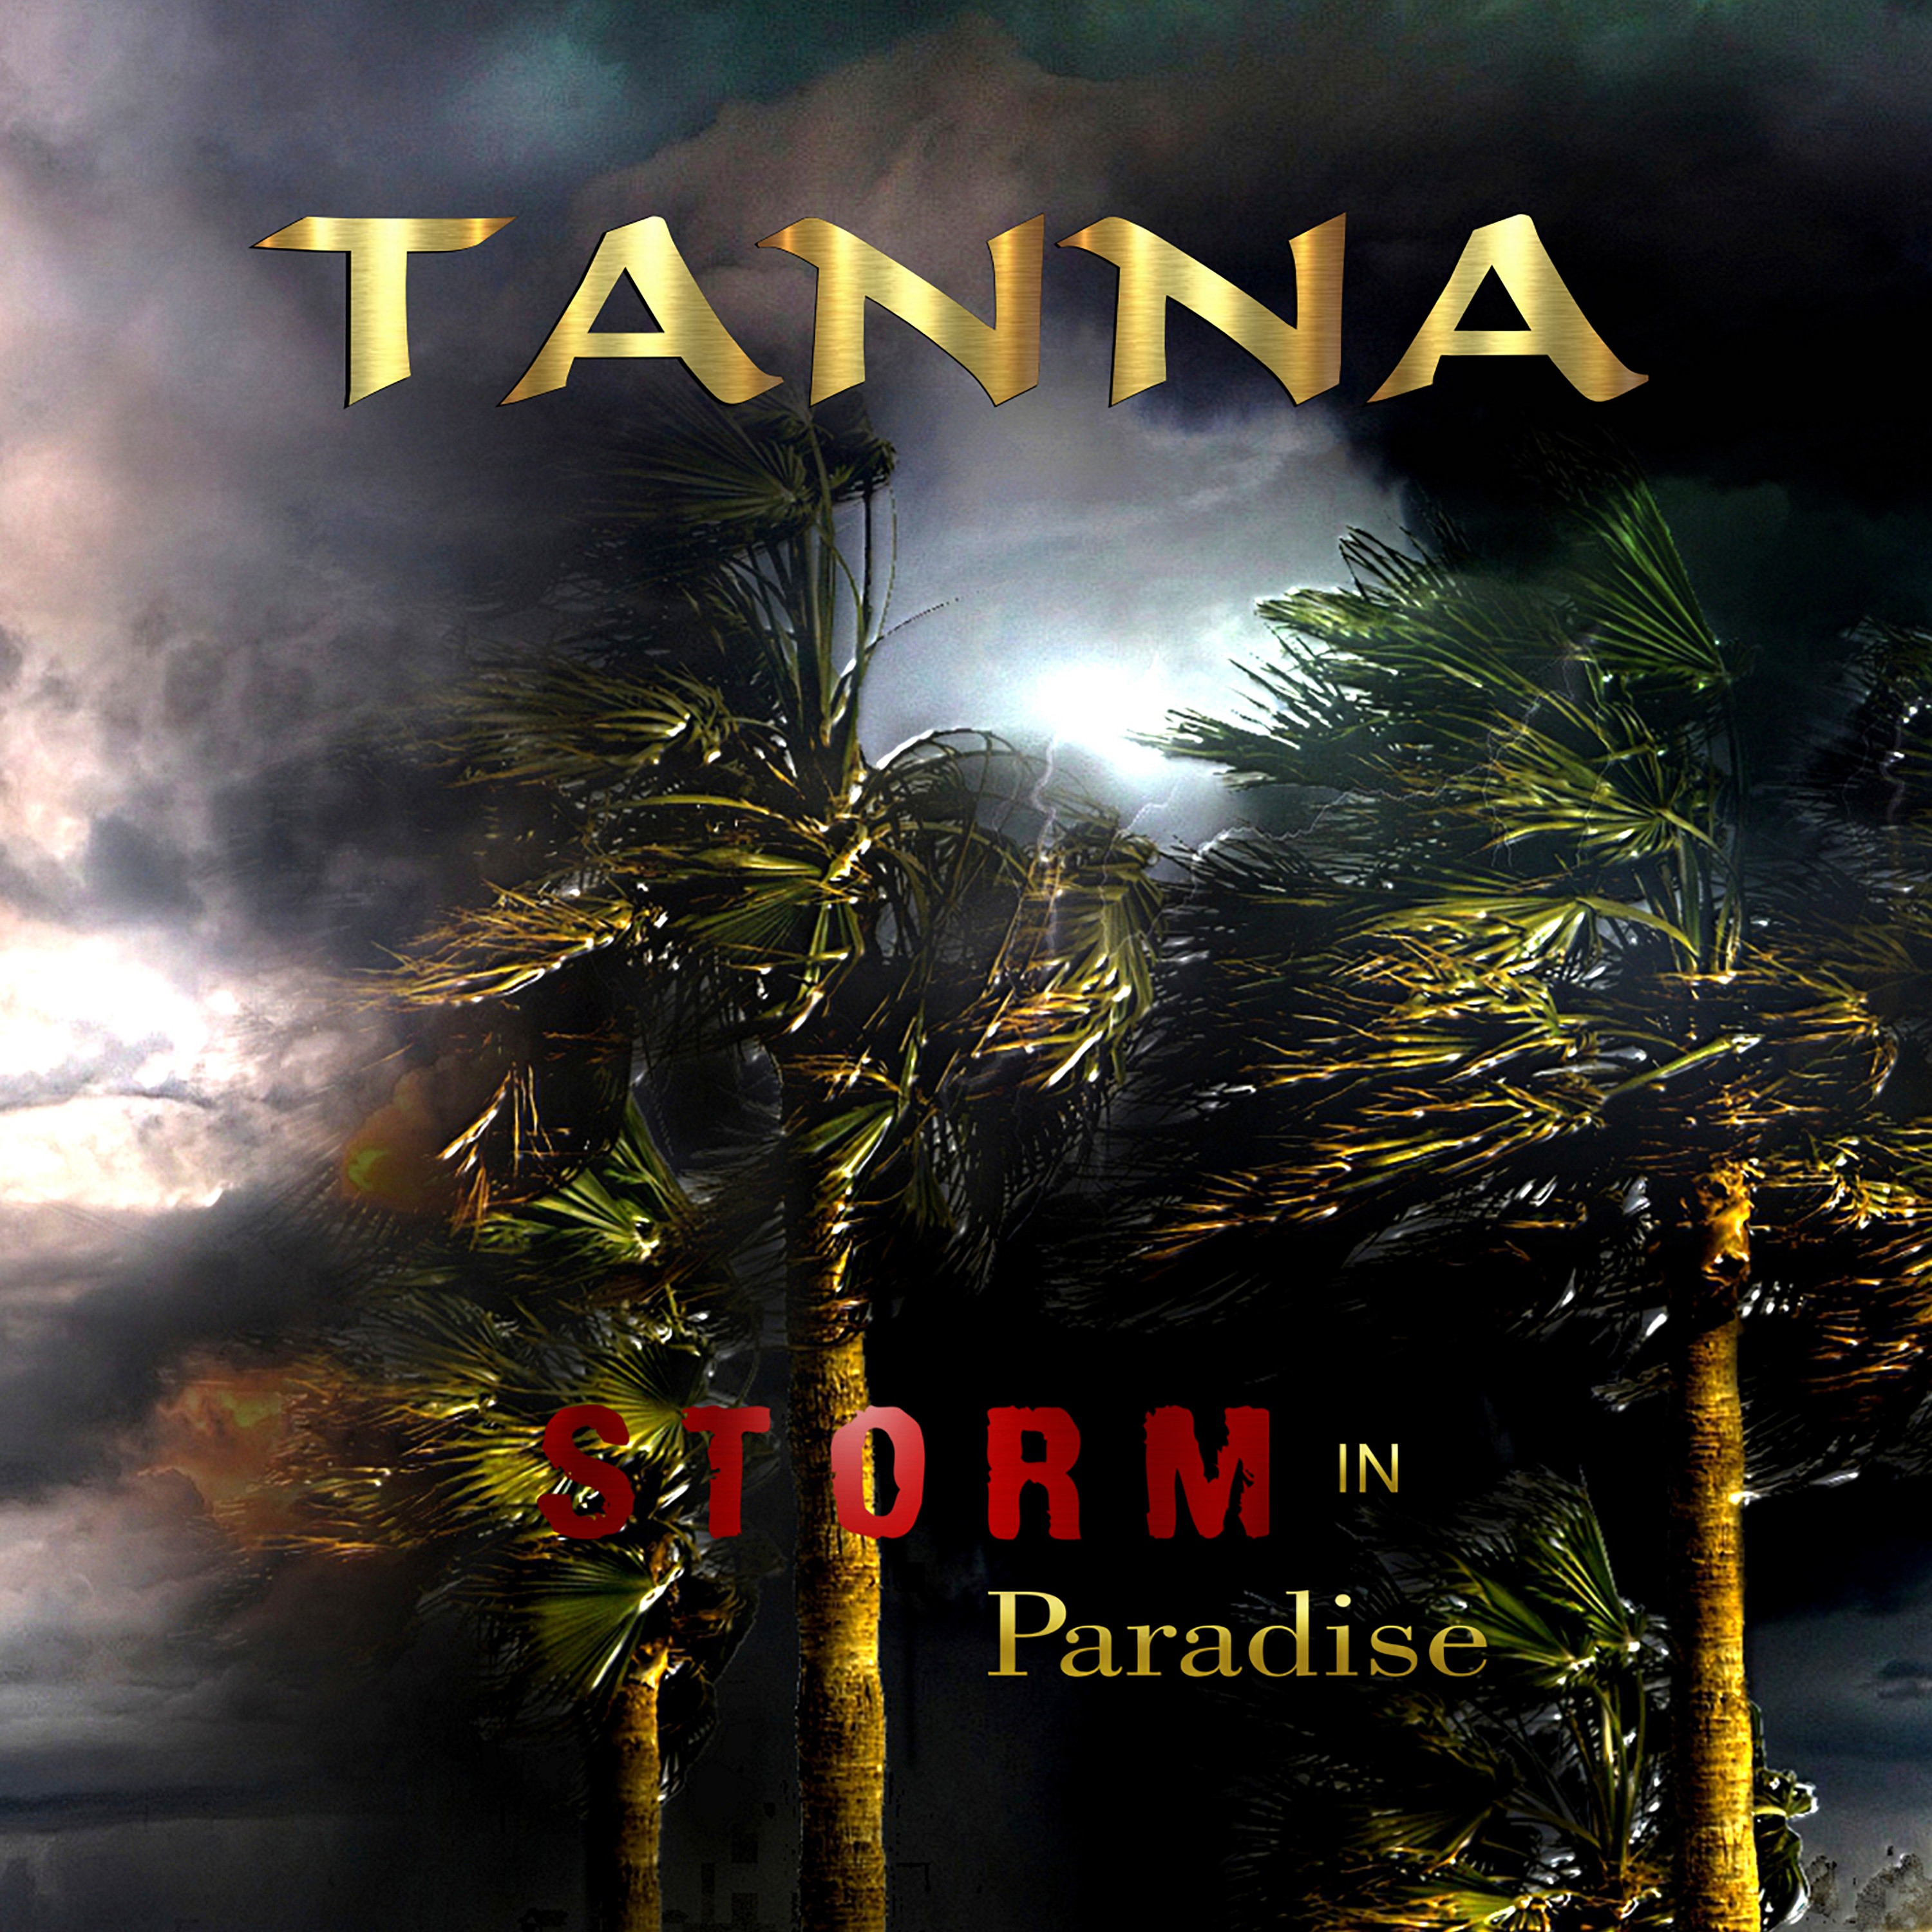 TANNA - Storm In Paradise